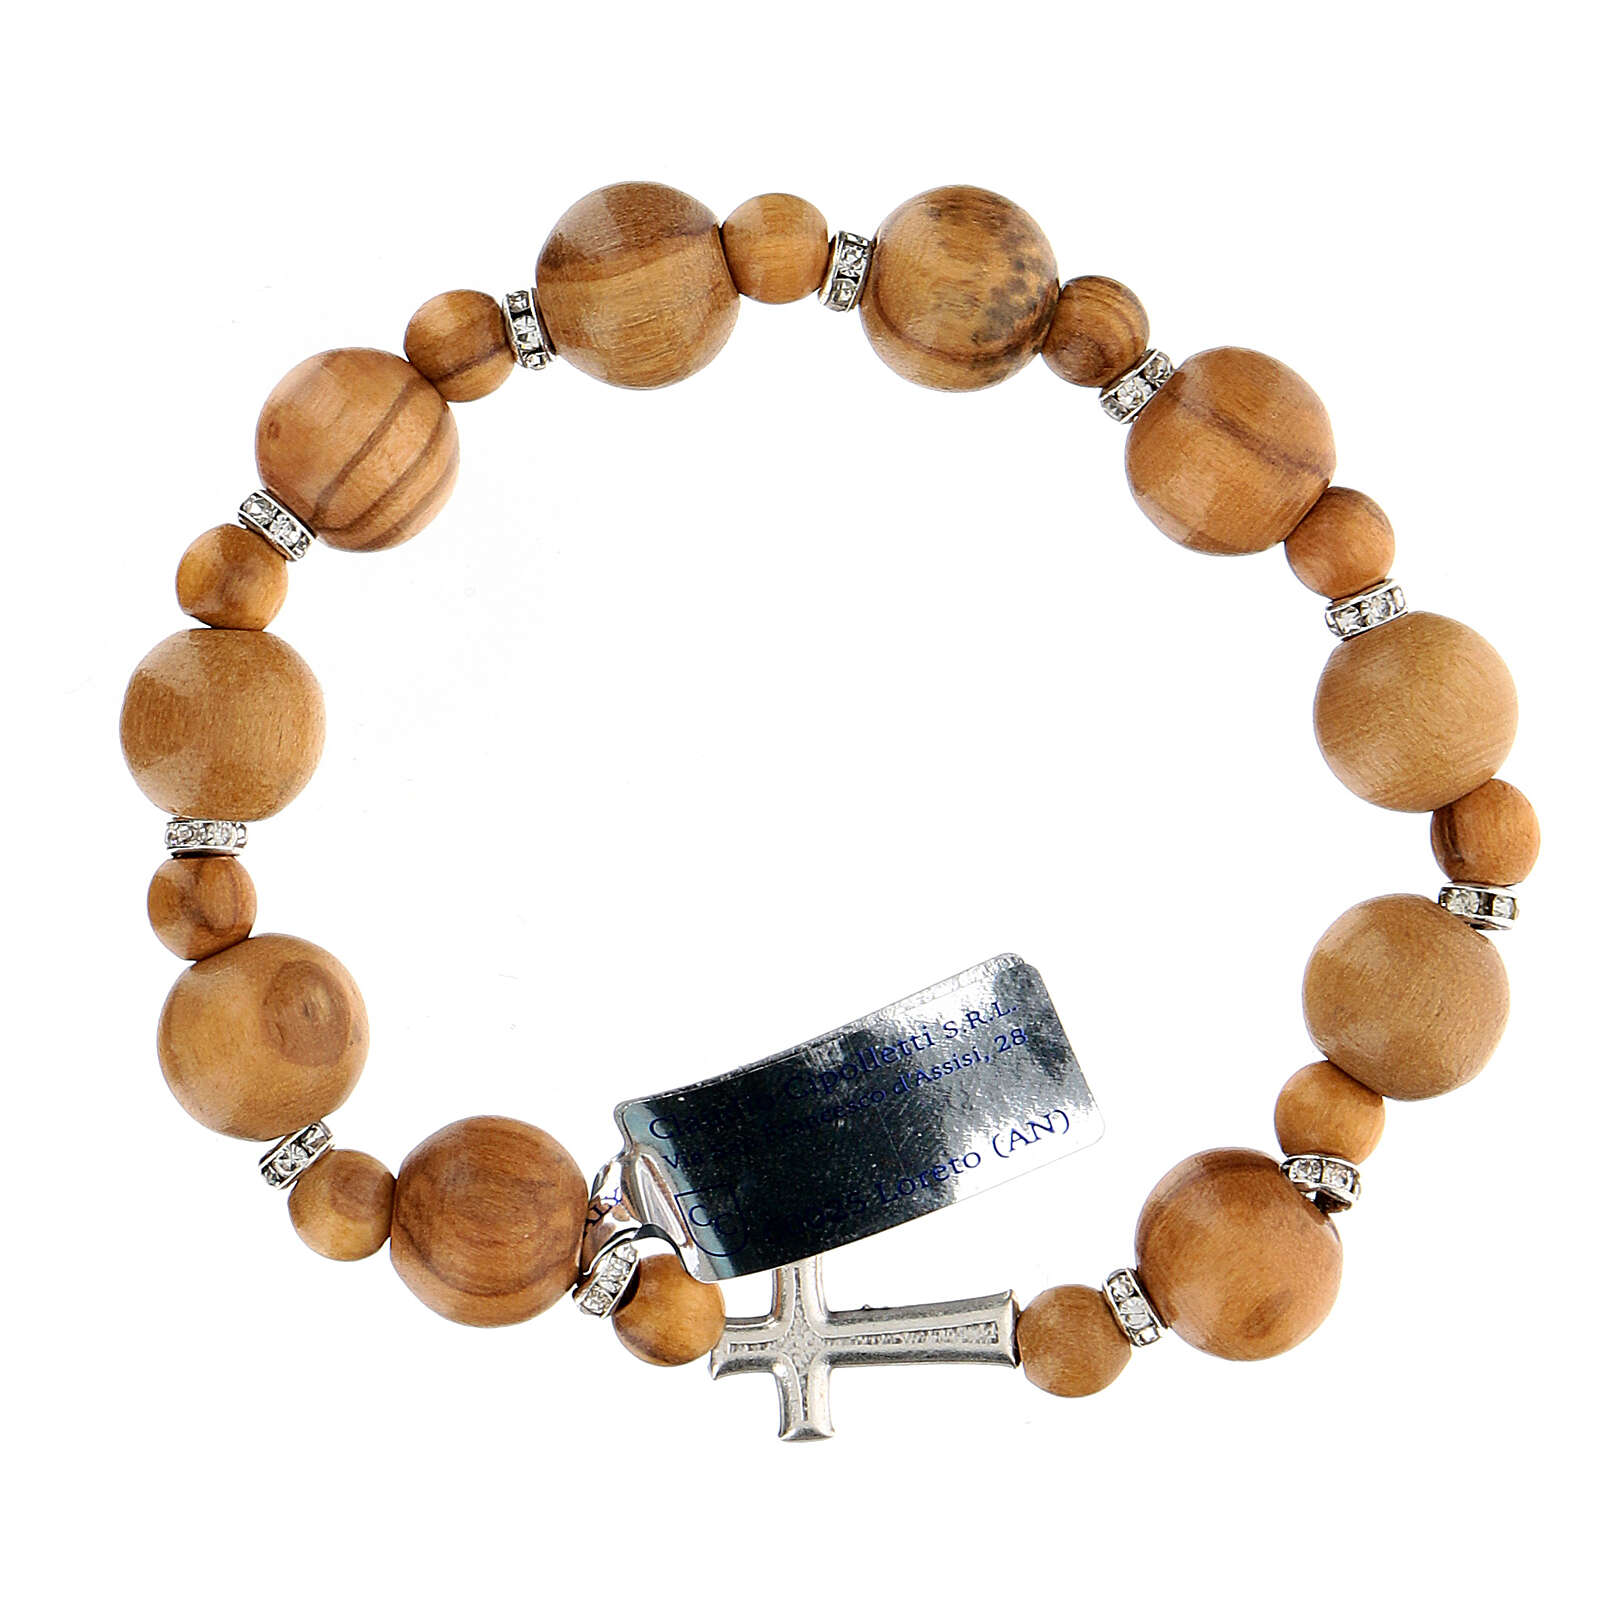 Decade rosary bracelet with elastic, olive wood 7 mm 4